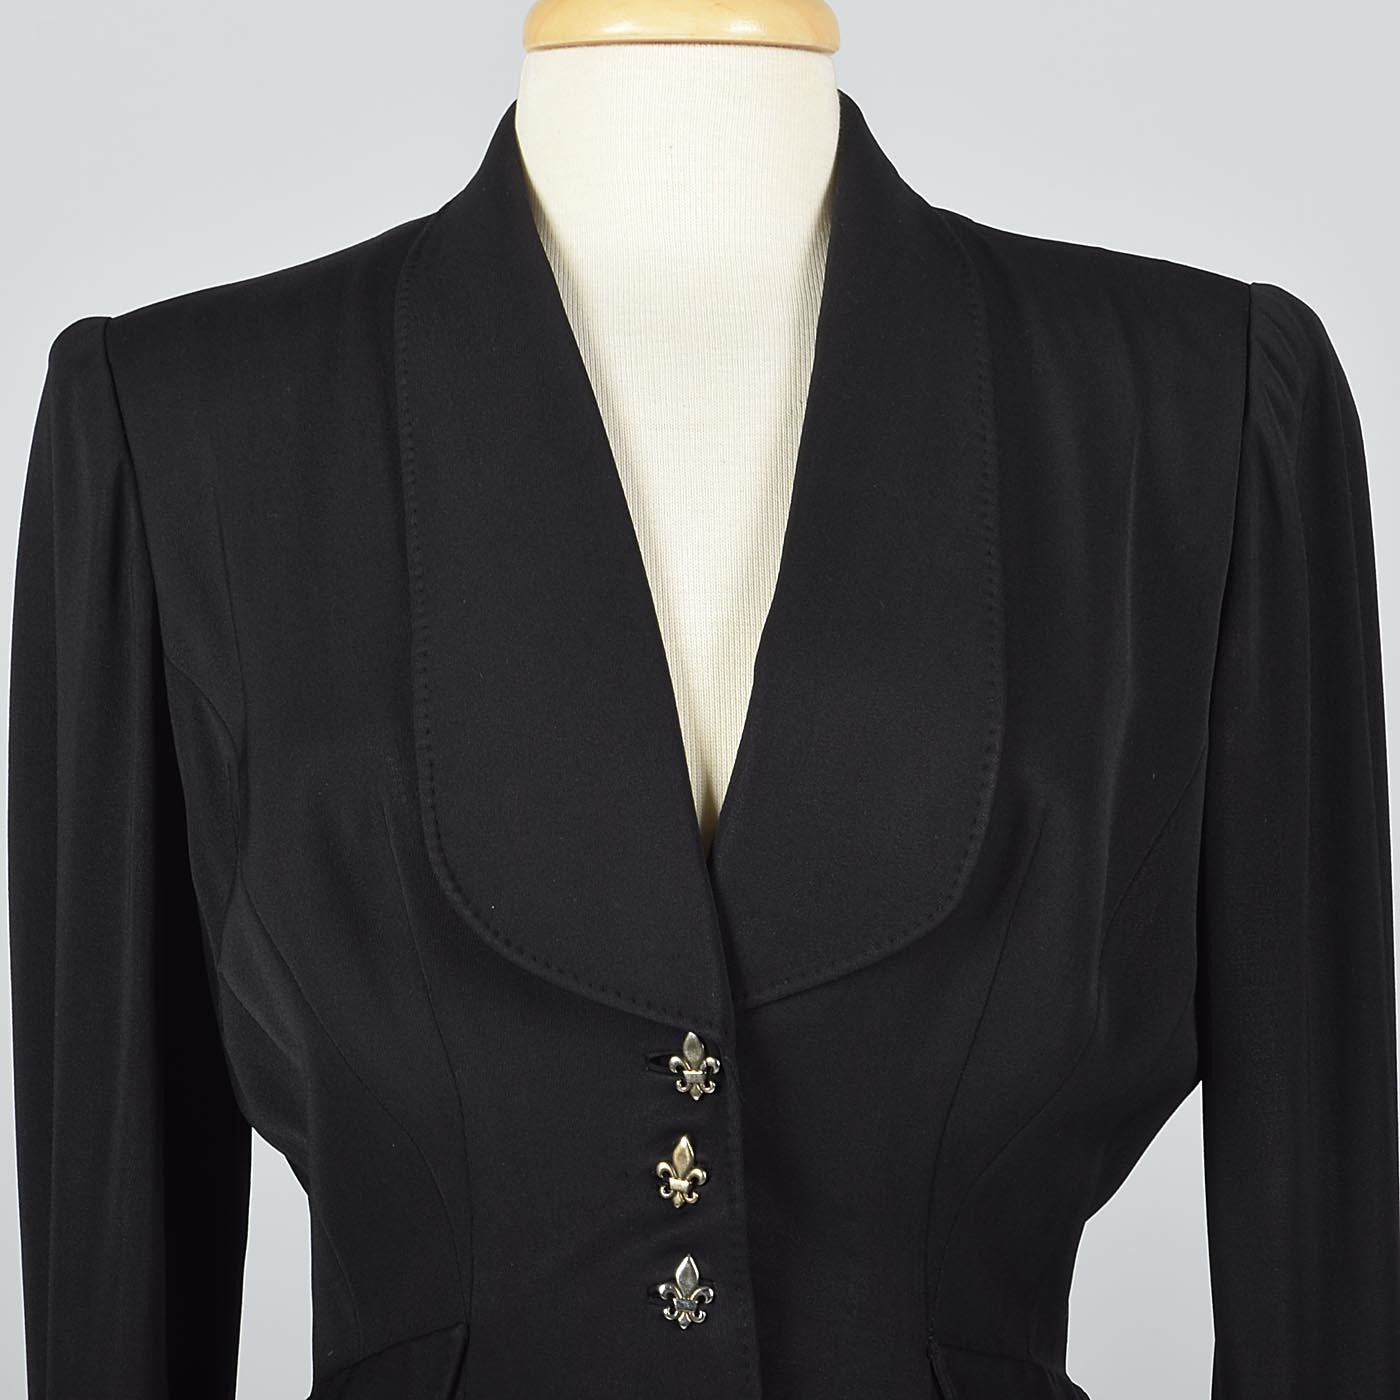 1950s Black Blazer with Shawl Collar